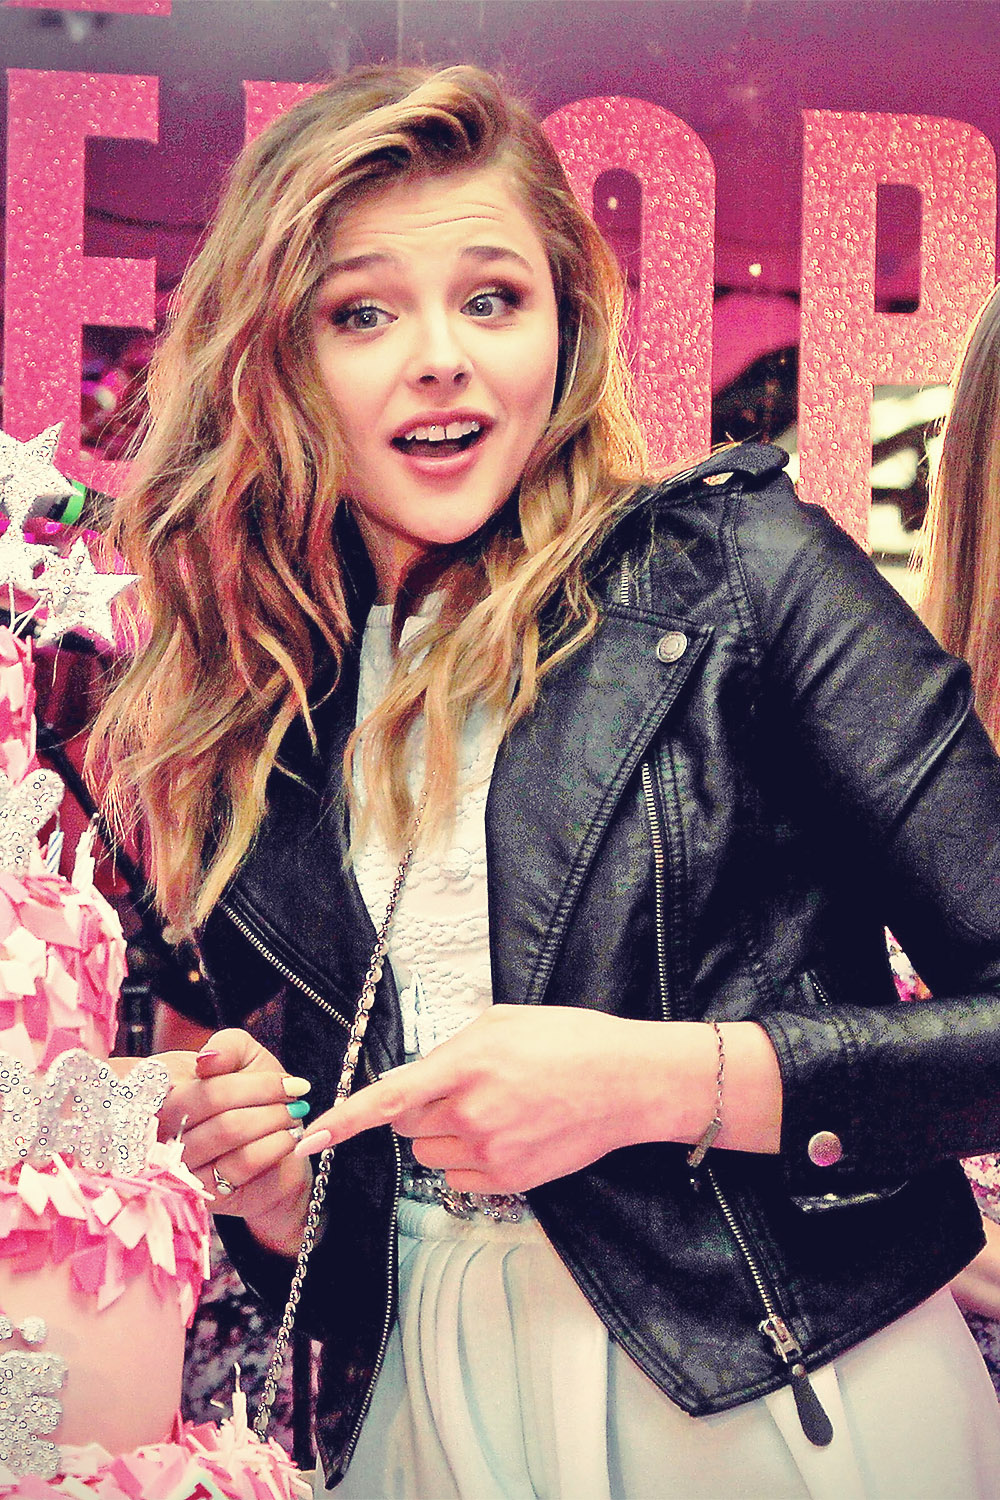 Chloe Moretz Teen Vogue 10th Anniversary